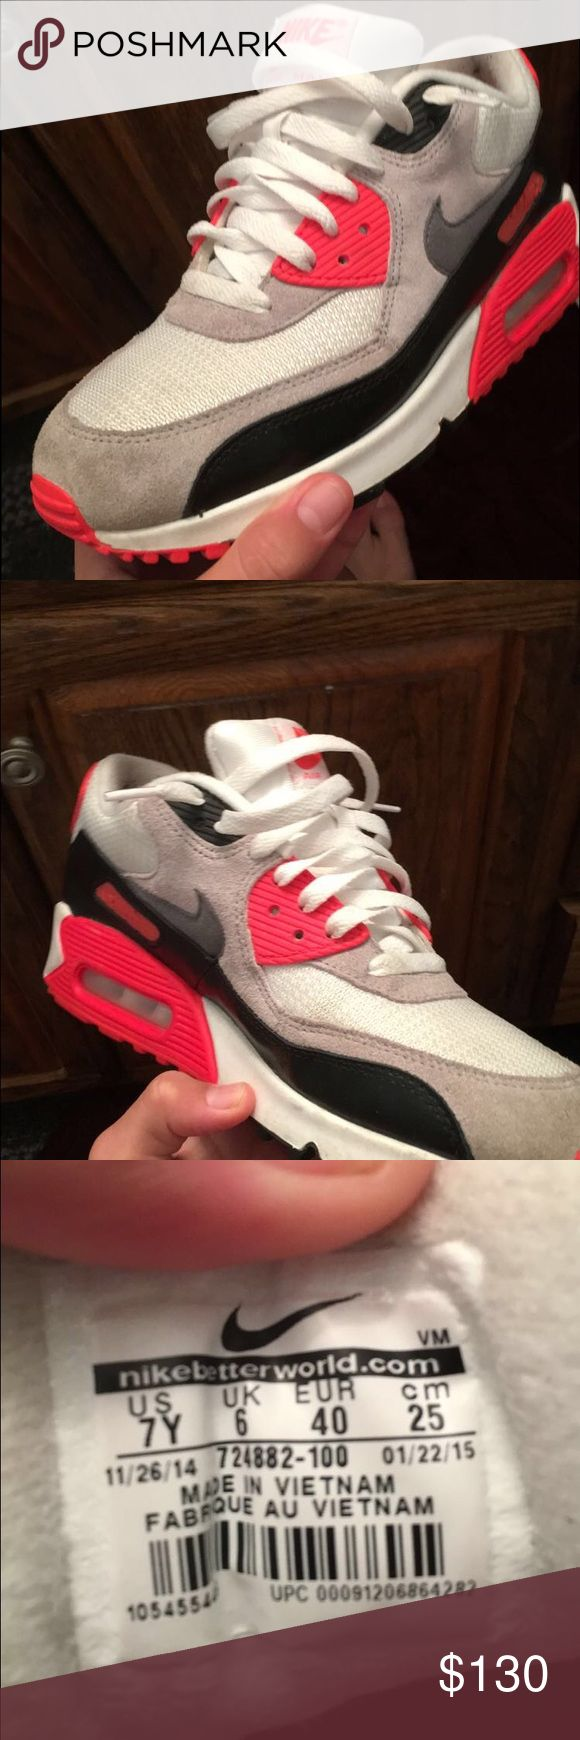 Nike air max 90 infrared Worn one time Shoes